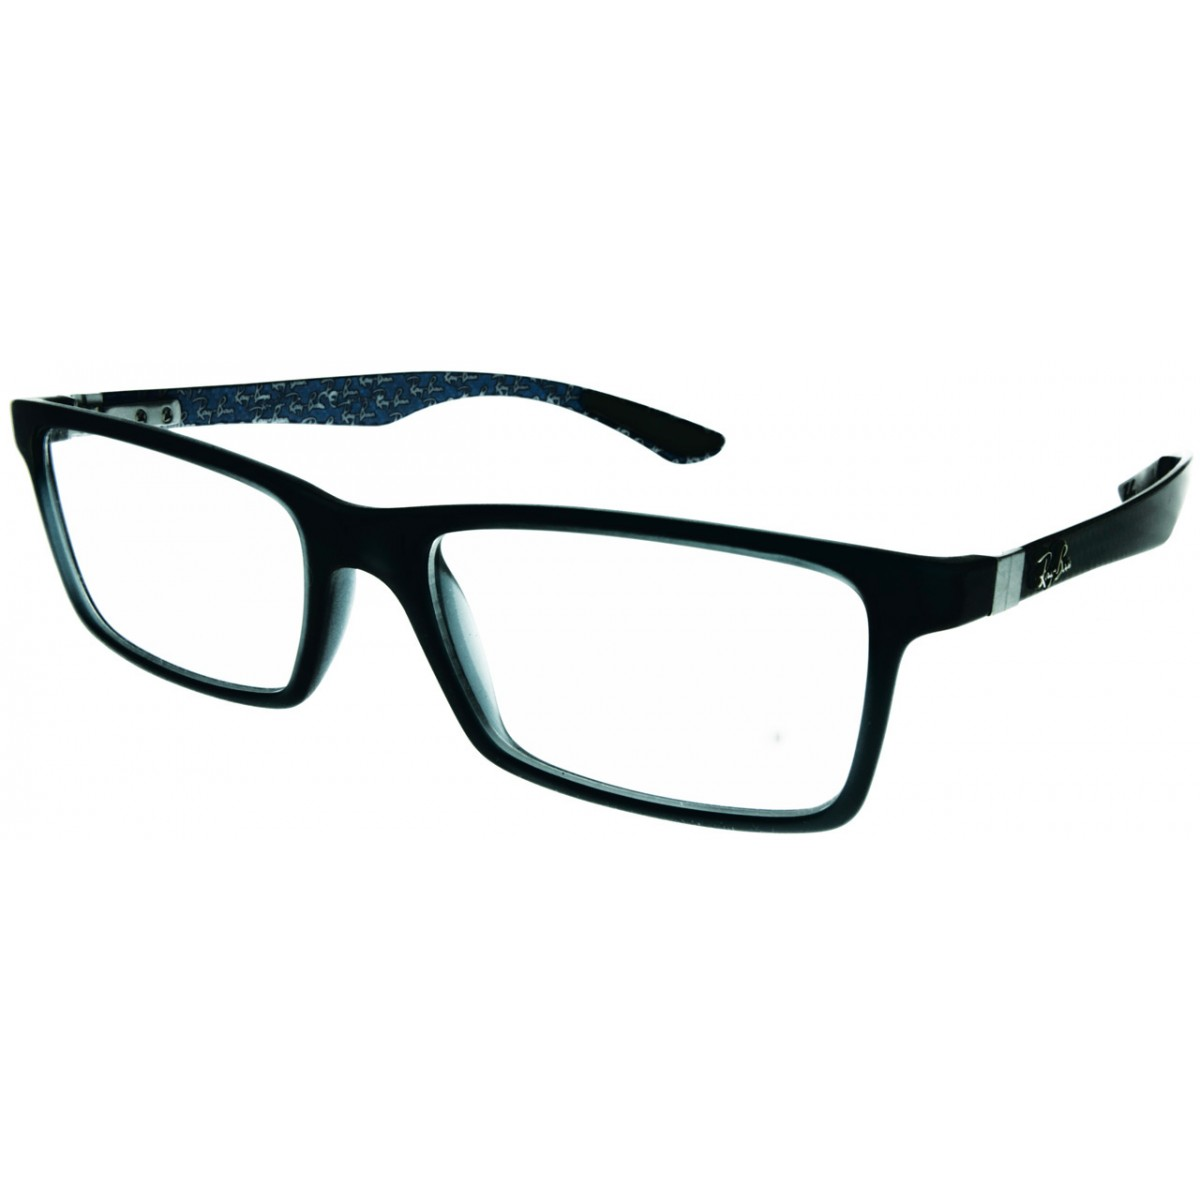 6080ee2cadf0a Online Eyeglasses with Customer Service Center in California RB8901 ...